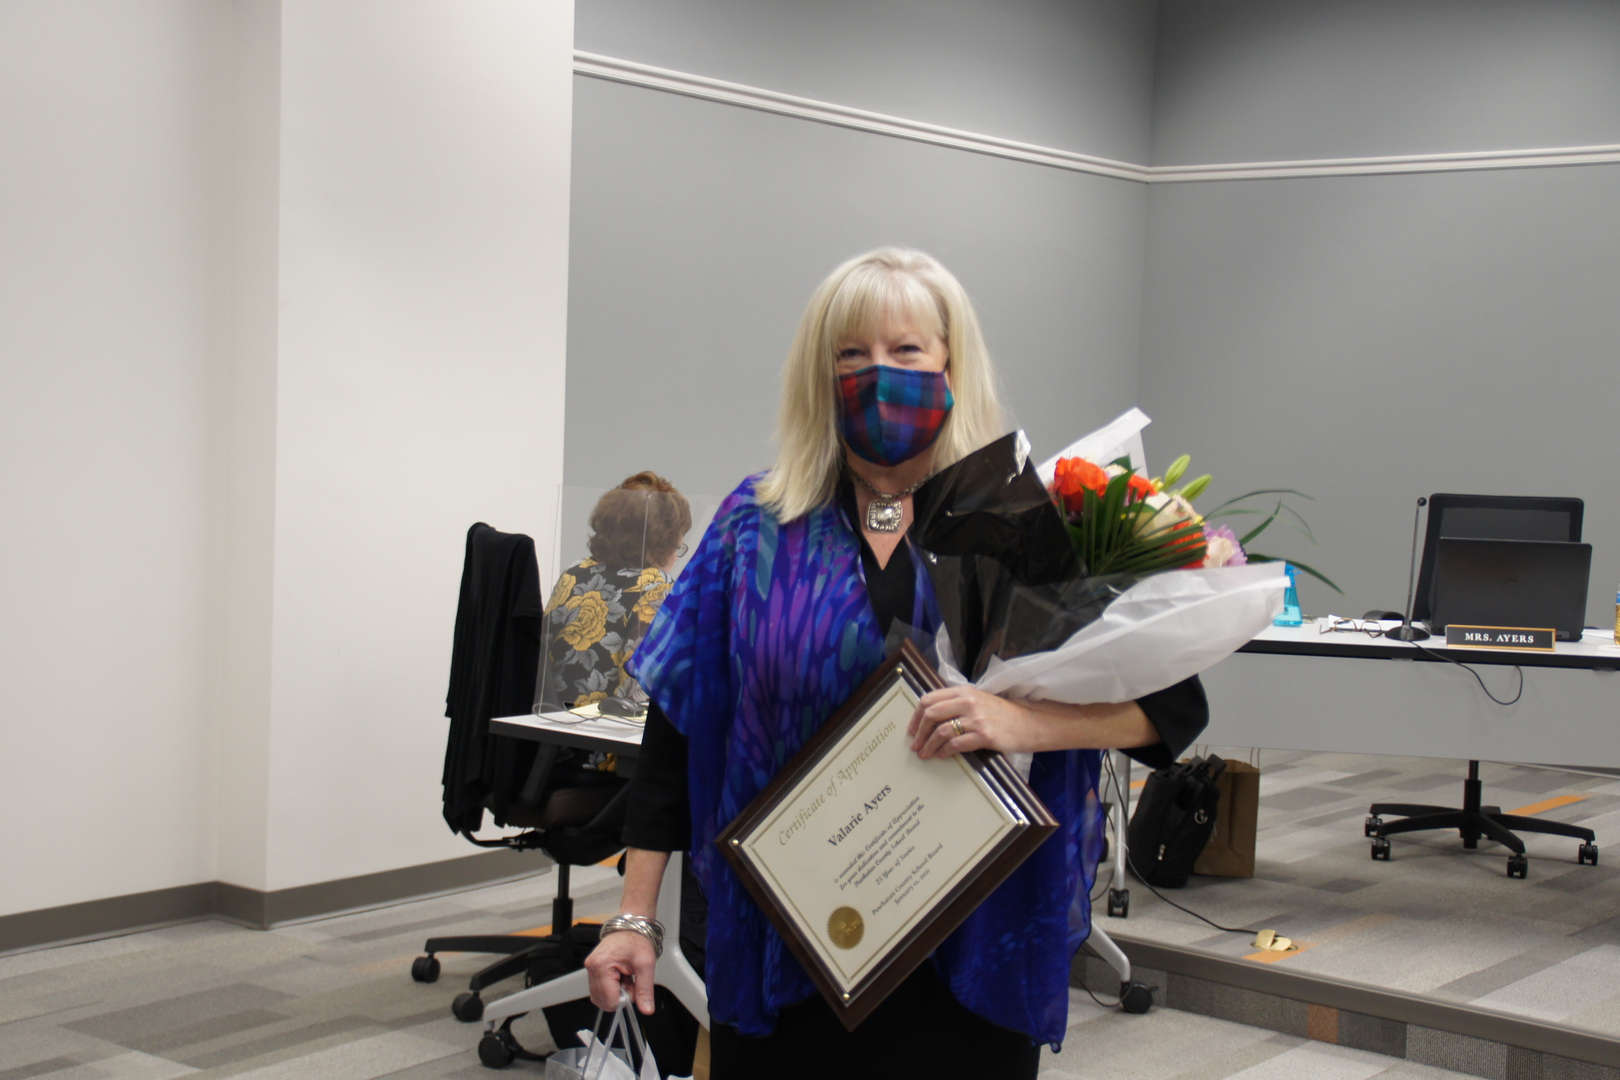 Valarie Ayers receives recognition for 25 years of service